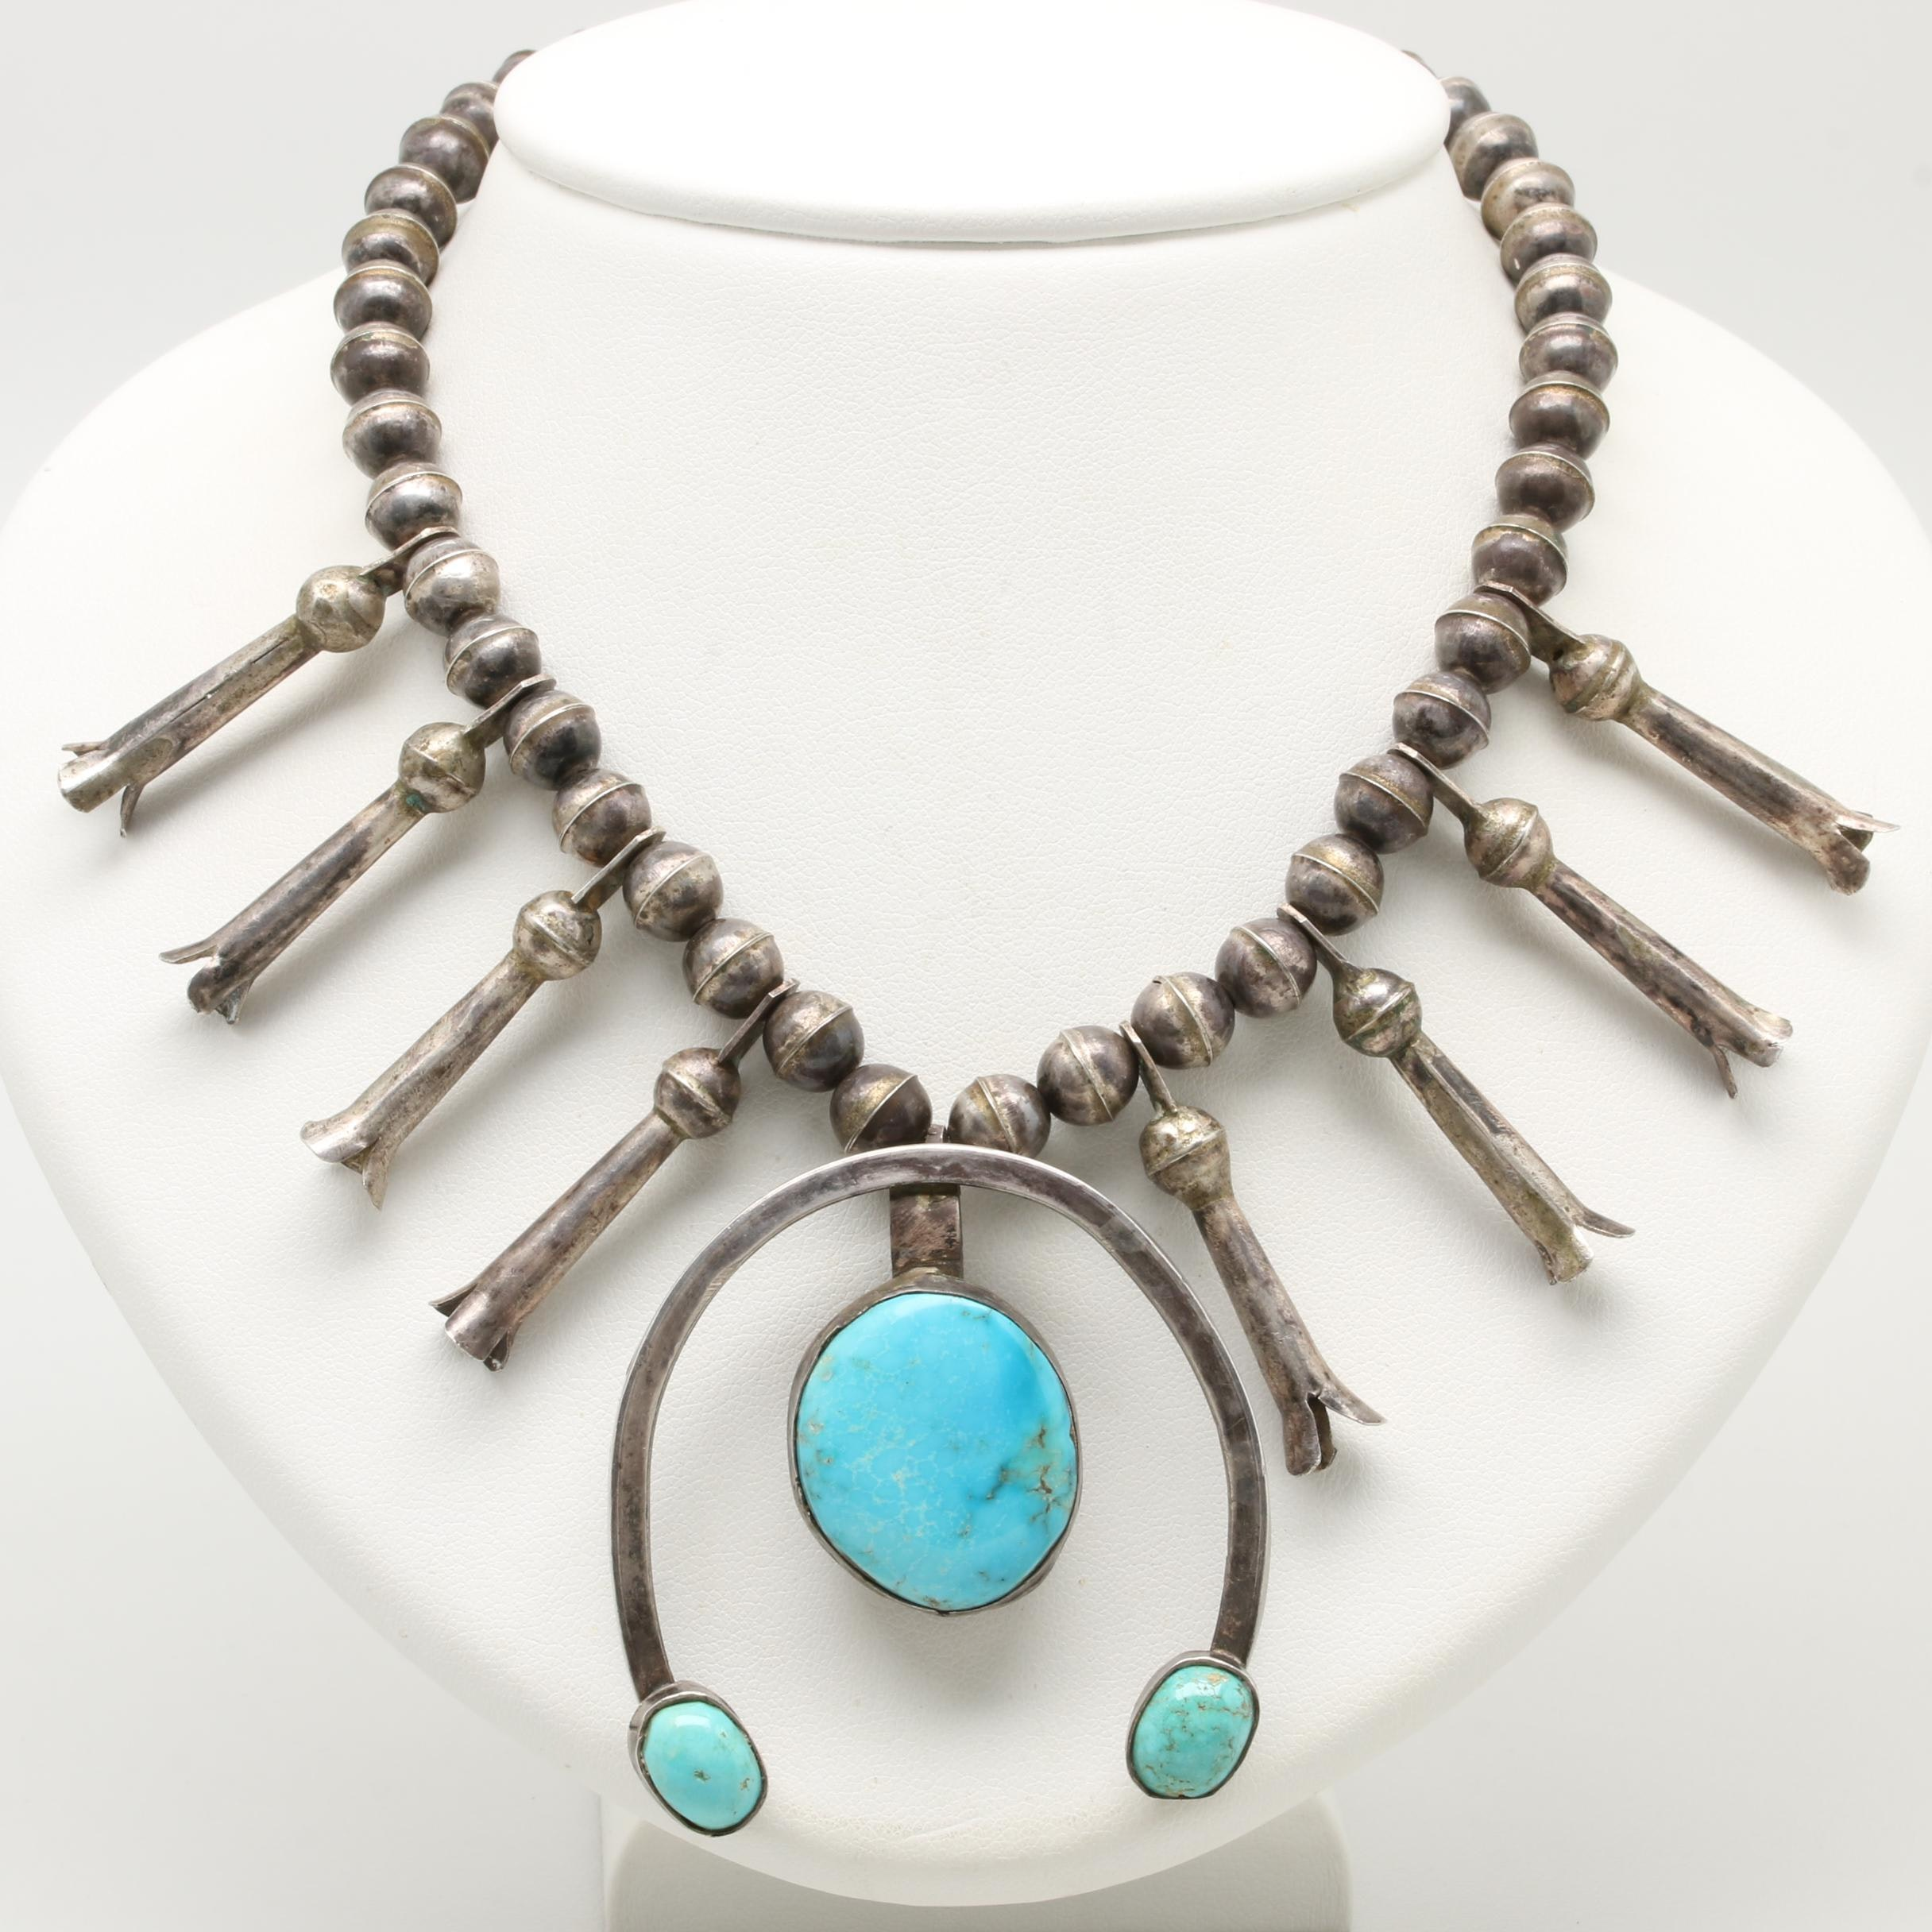 Southwestern Style Sterling Silver Turquoise Naja Squash Blossom Necklace